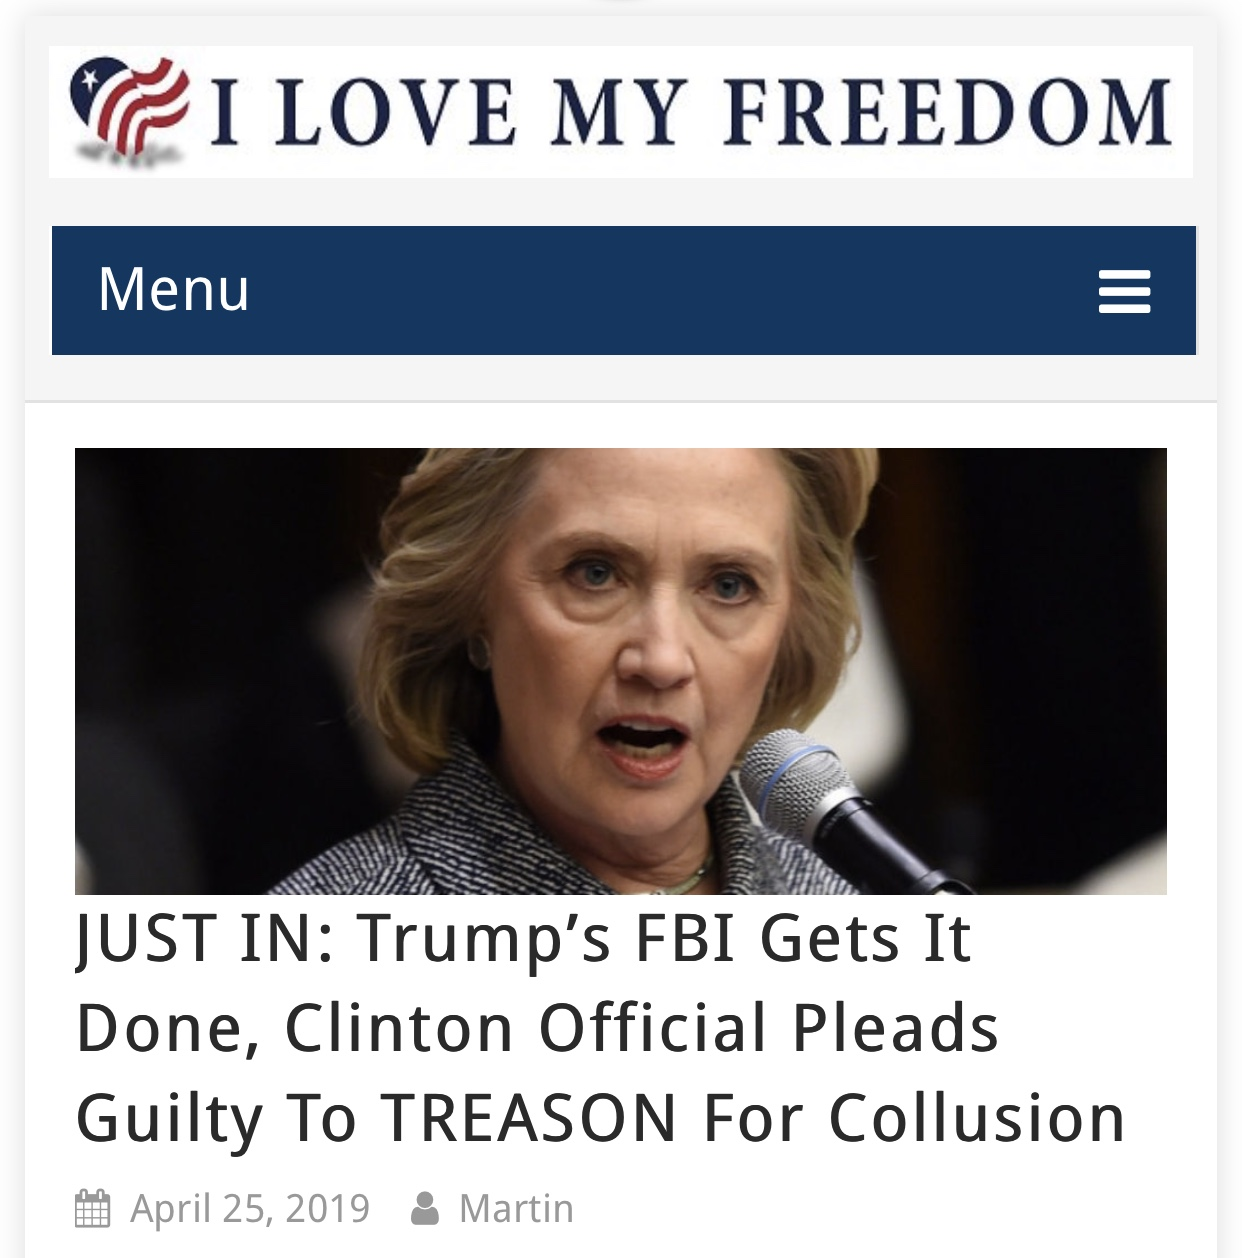 JUST IN: Trump's FBI Gets It Done, Clinton Official Pleads Guilty To TREASON For Collusion